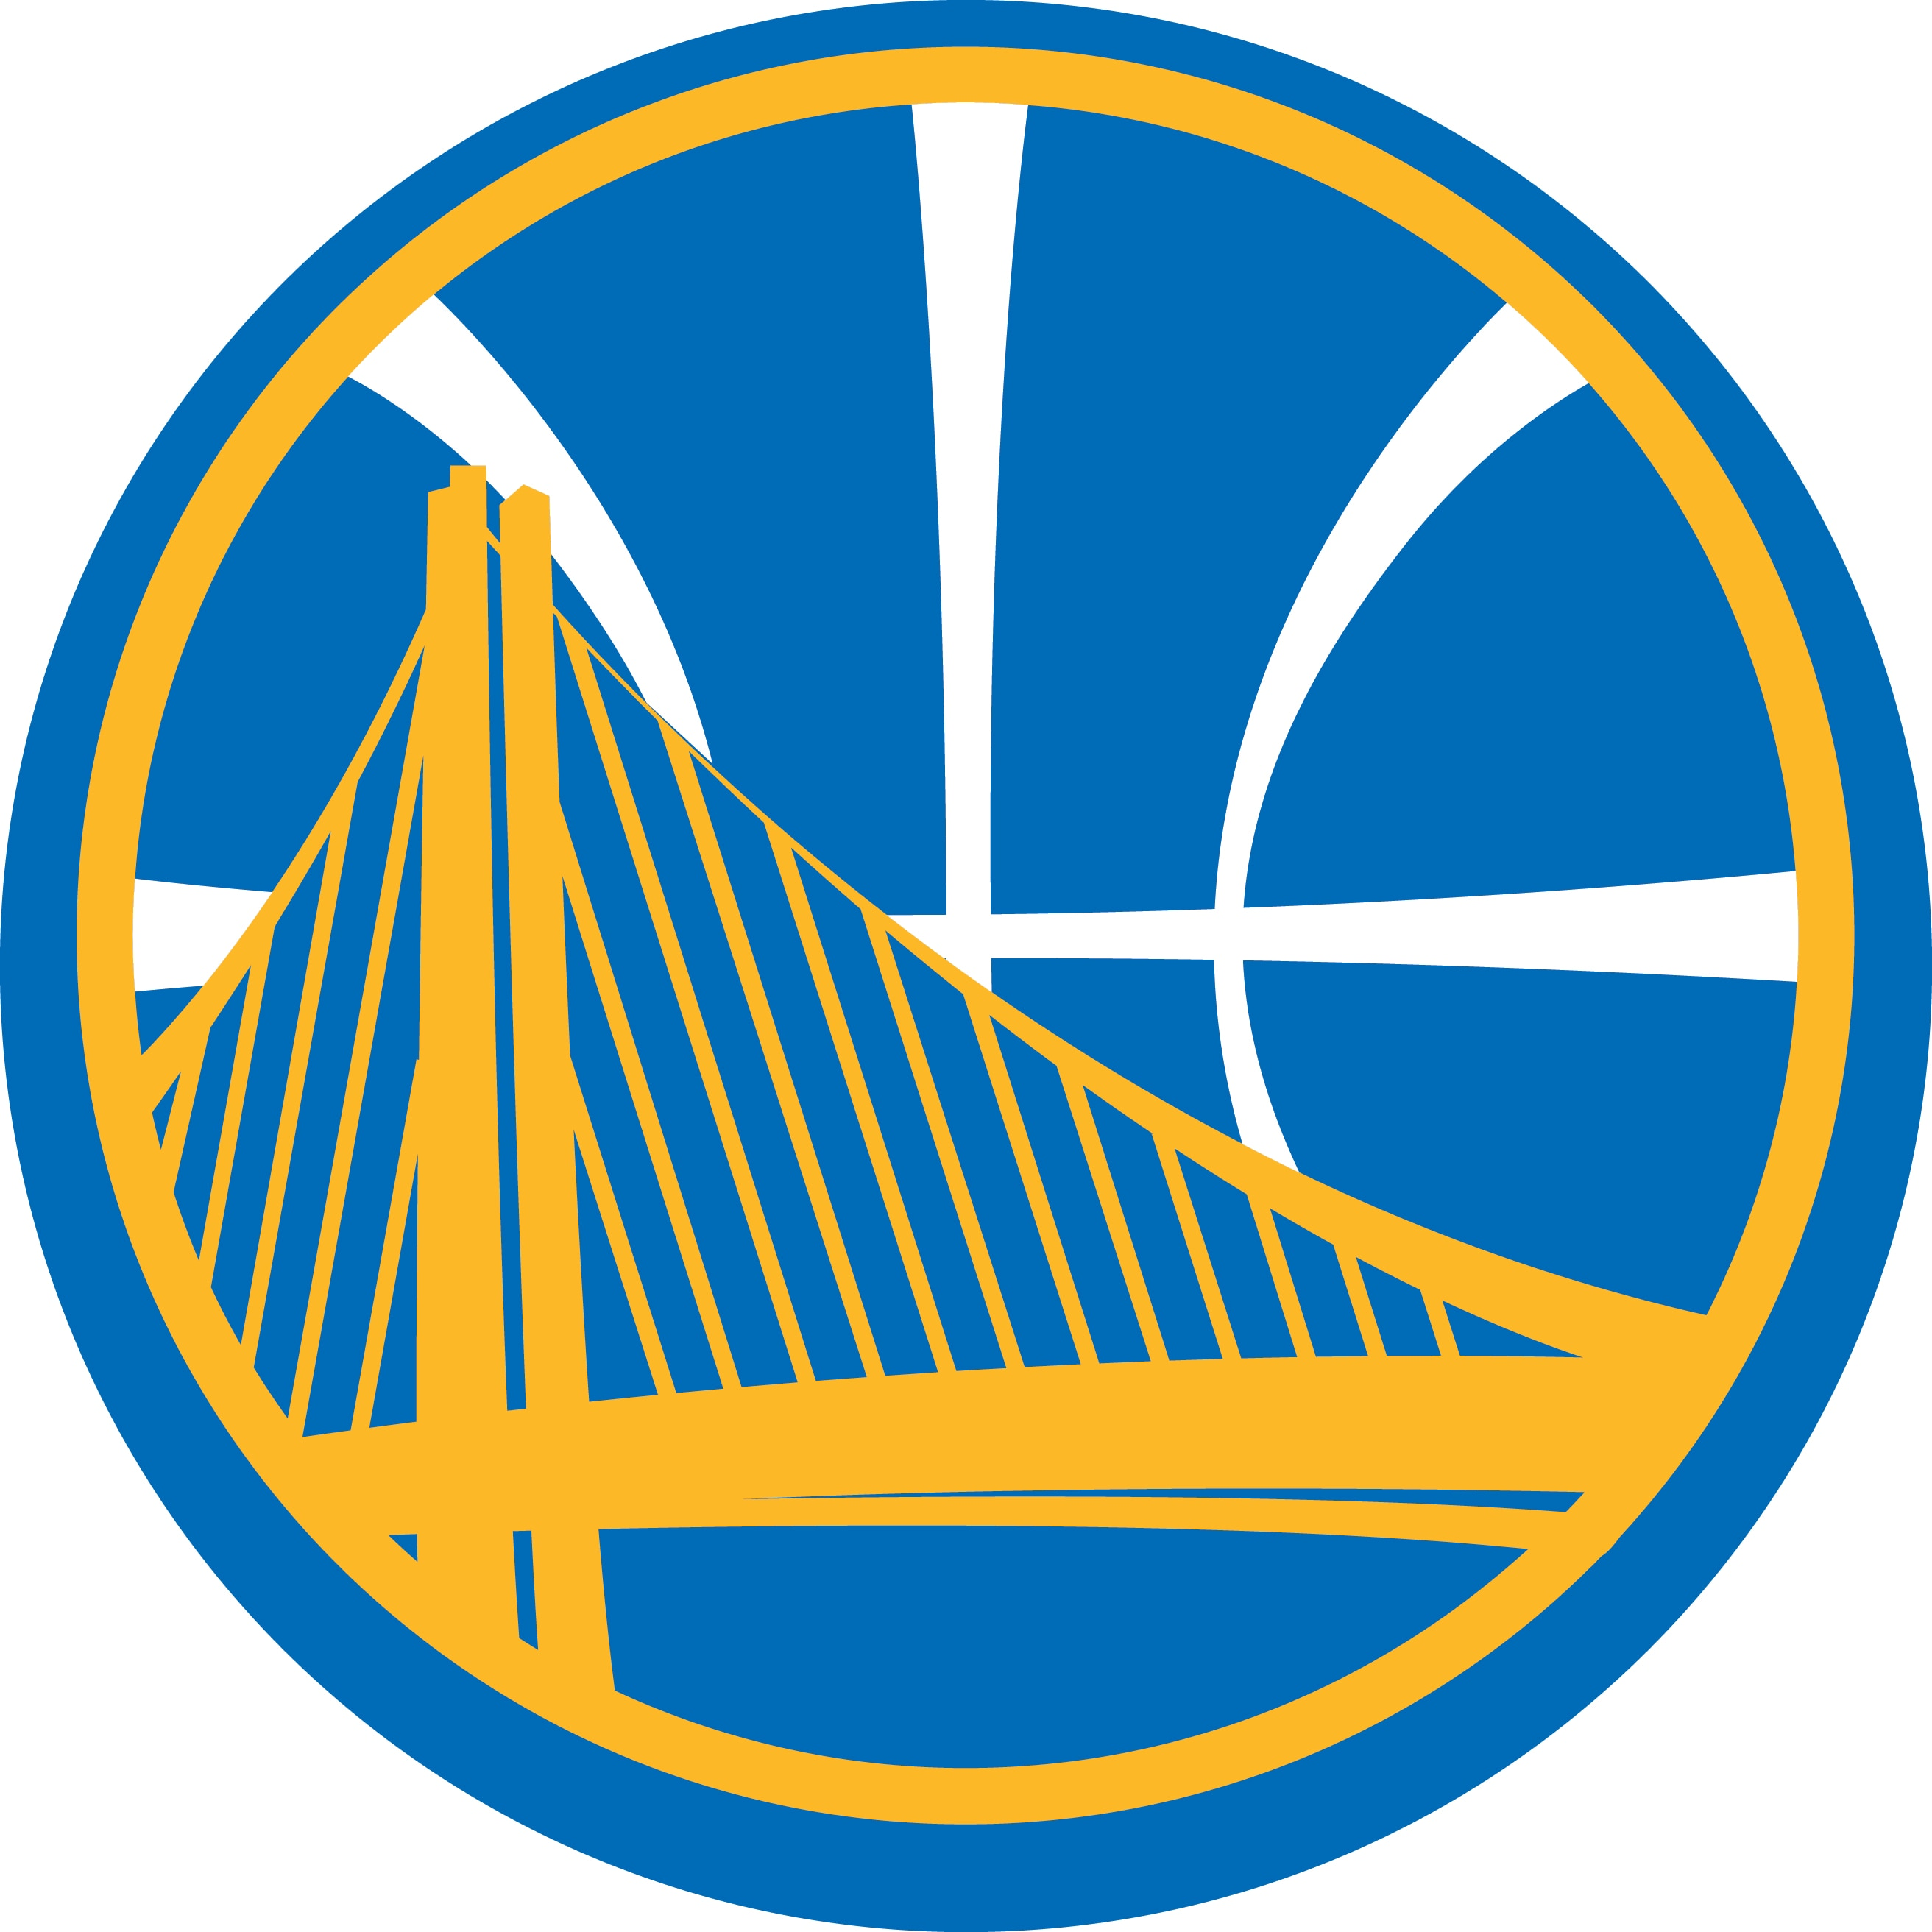 File:Golden State Warriors logo.svg - Wikipedia